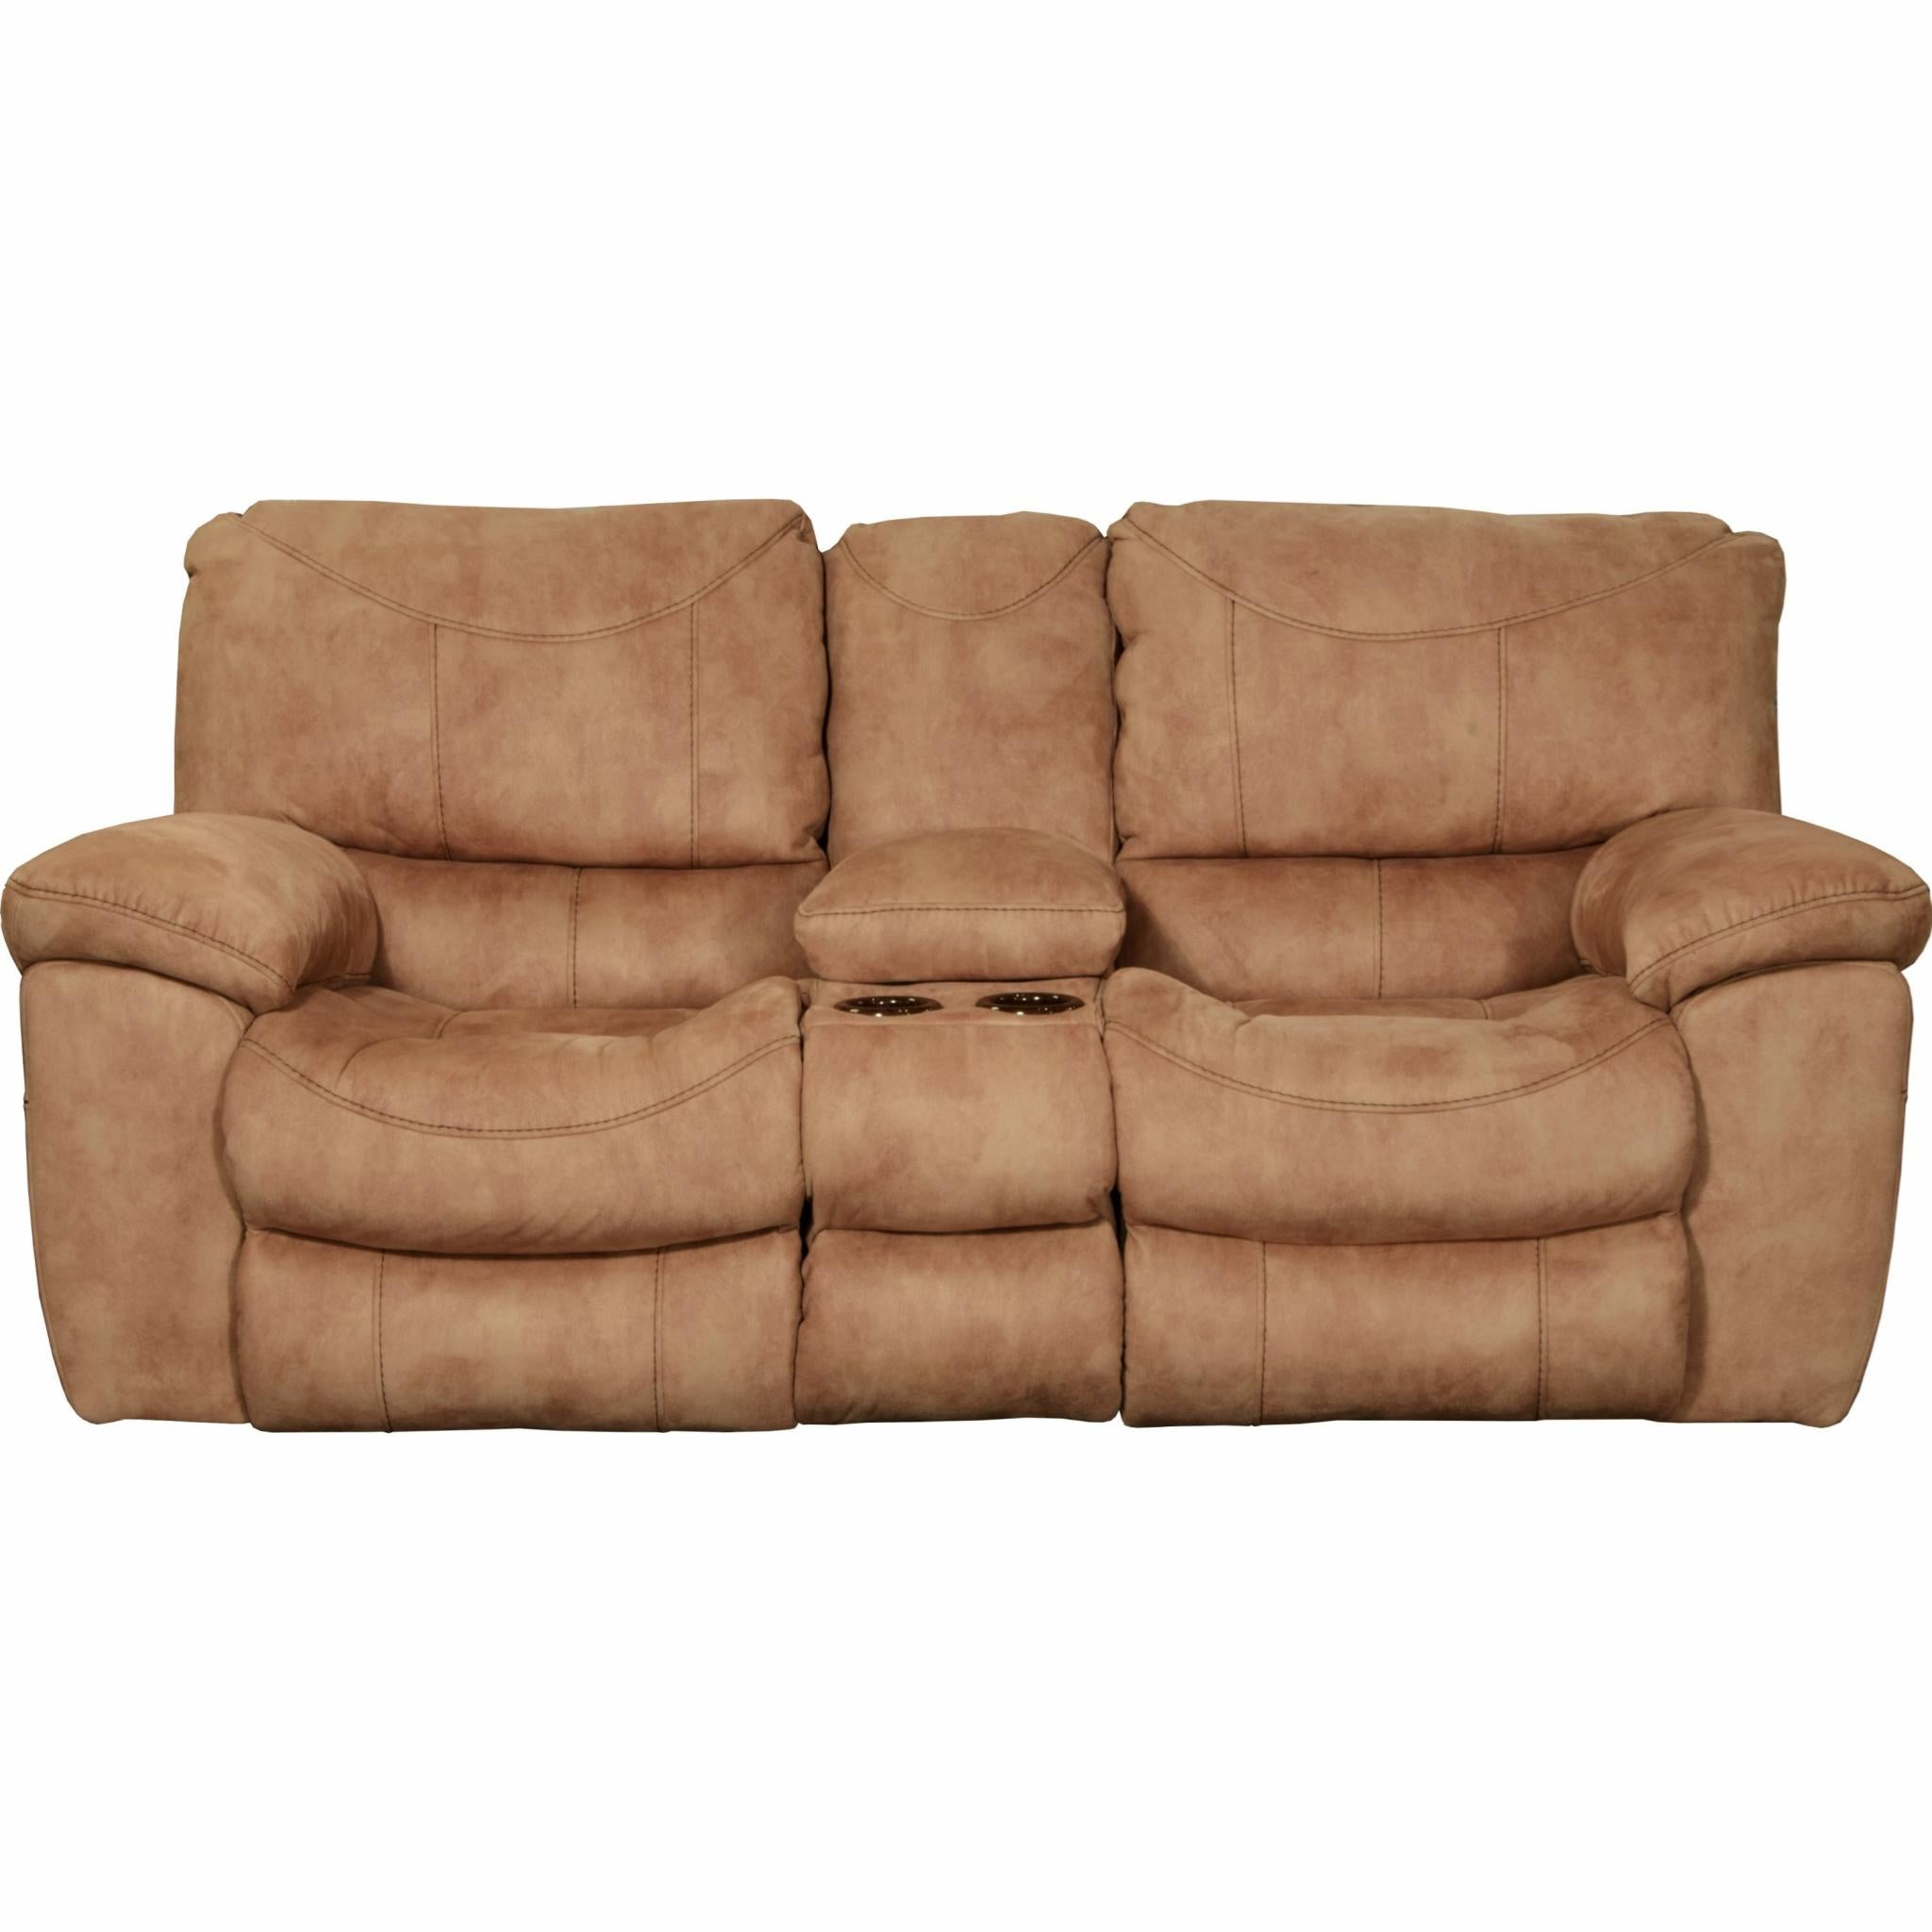 windermere loveseat loveseats pin appeal under country gorgeous the this living modern a boasting from